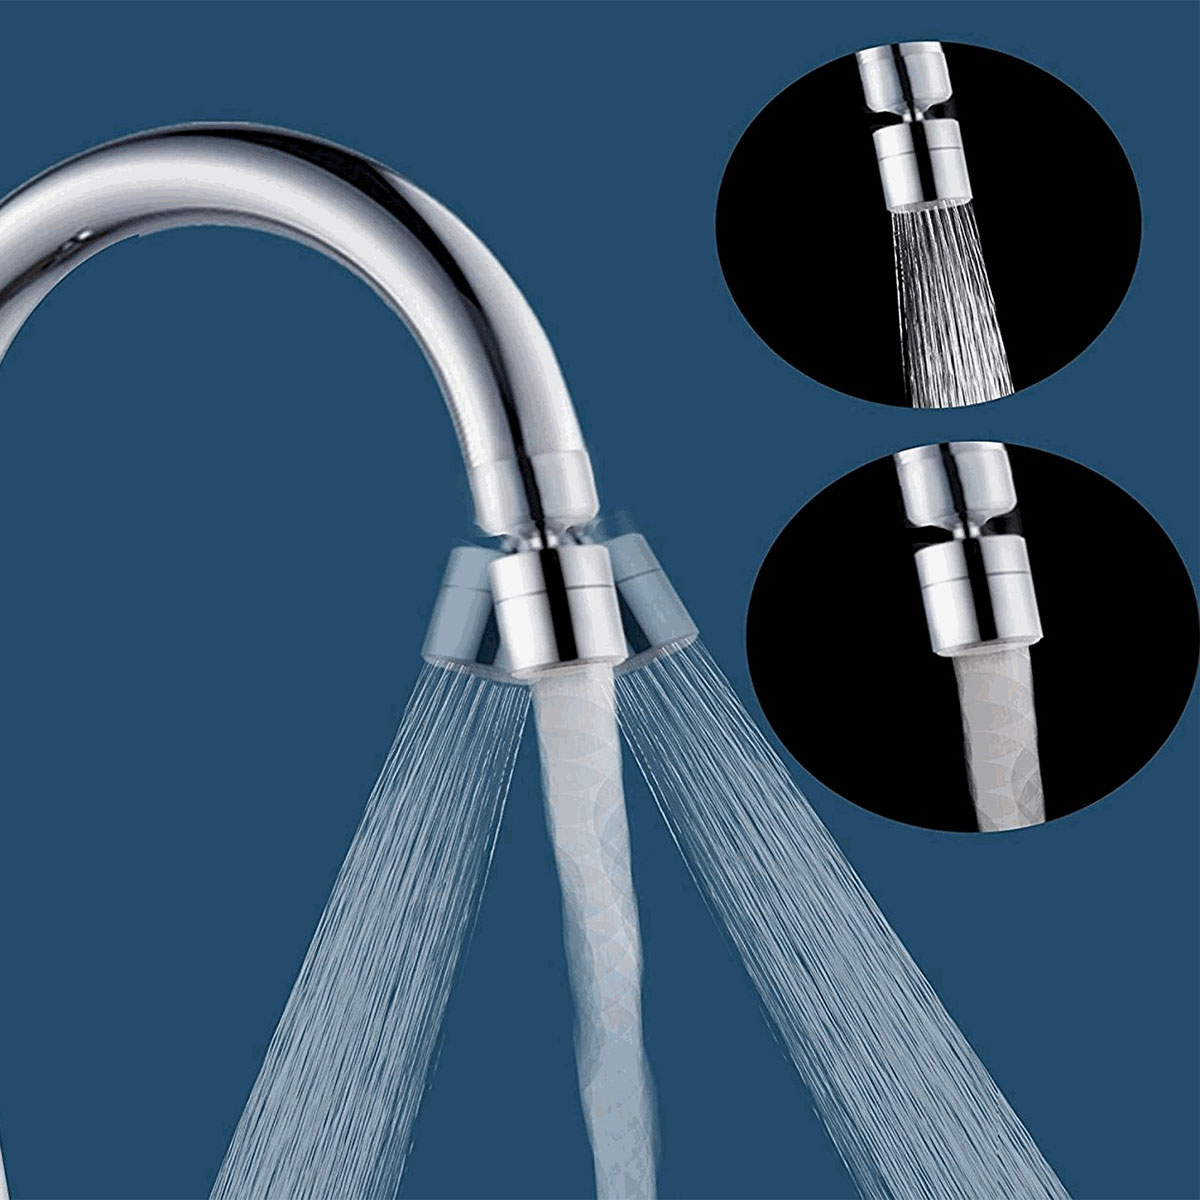 Creative Kitchen Water Faucet 360 Rotating Water Saving Tap Bathroom Head Filter Nozzle Swivel Stainless Steel Sink Aerator